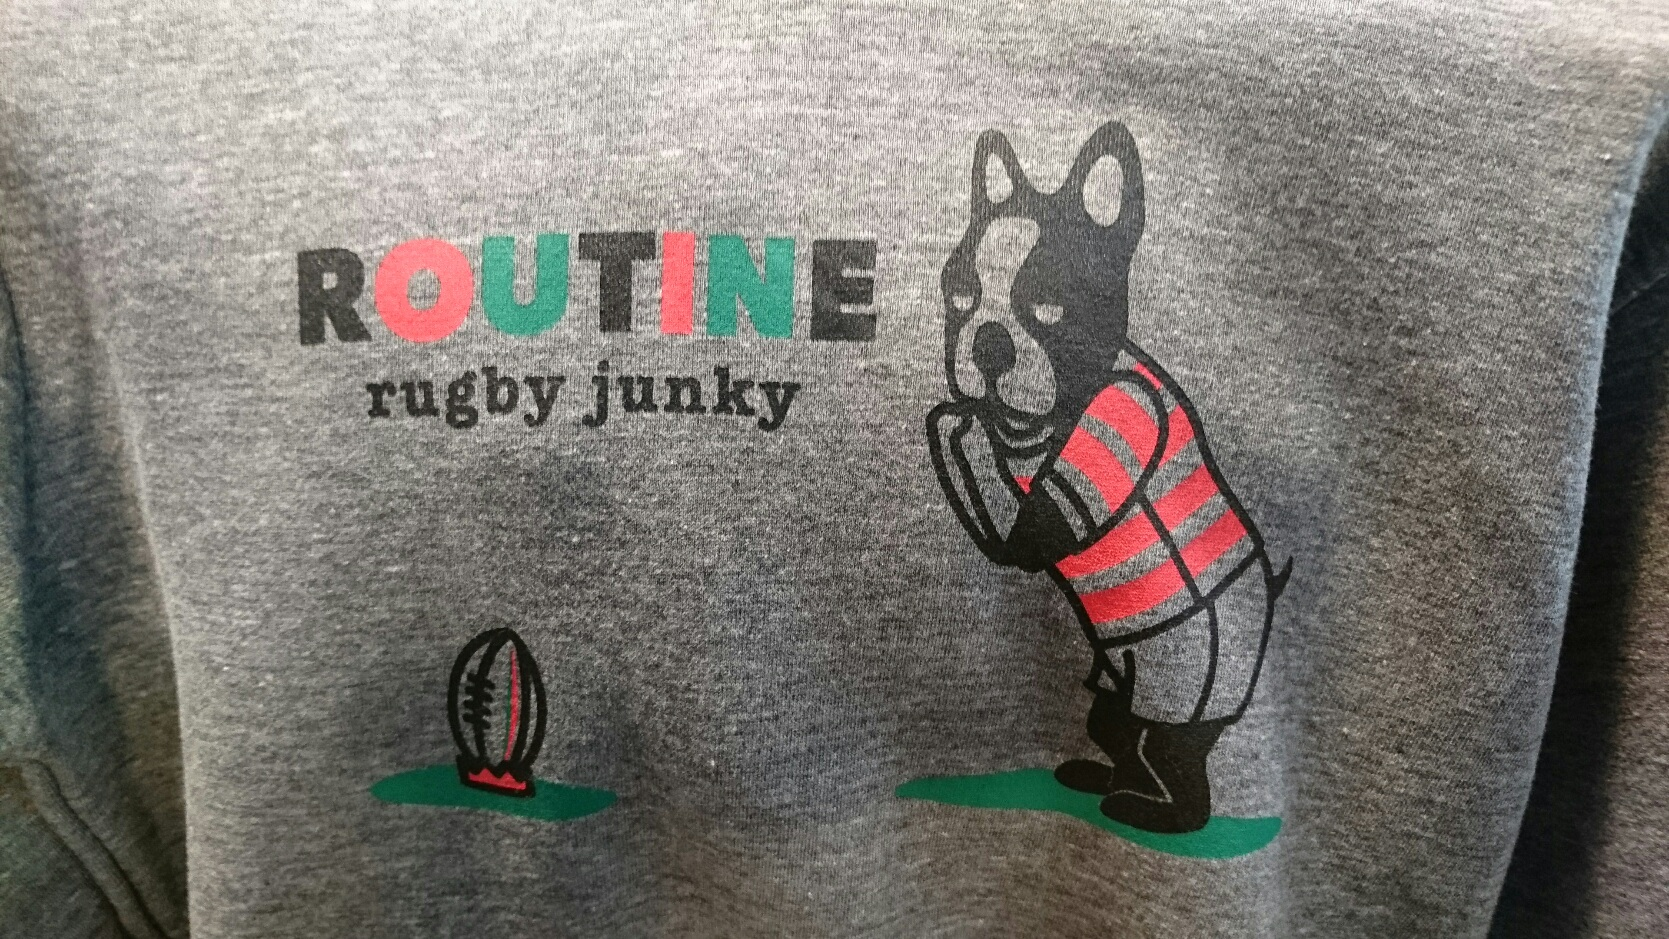 RUGBY JUNKY (ラグビージャンキー) ルーティンパーカー